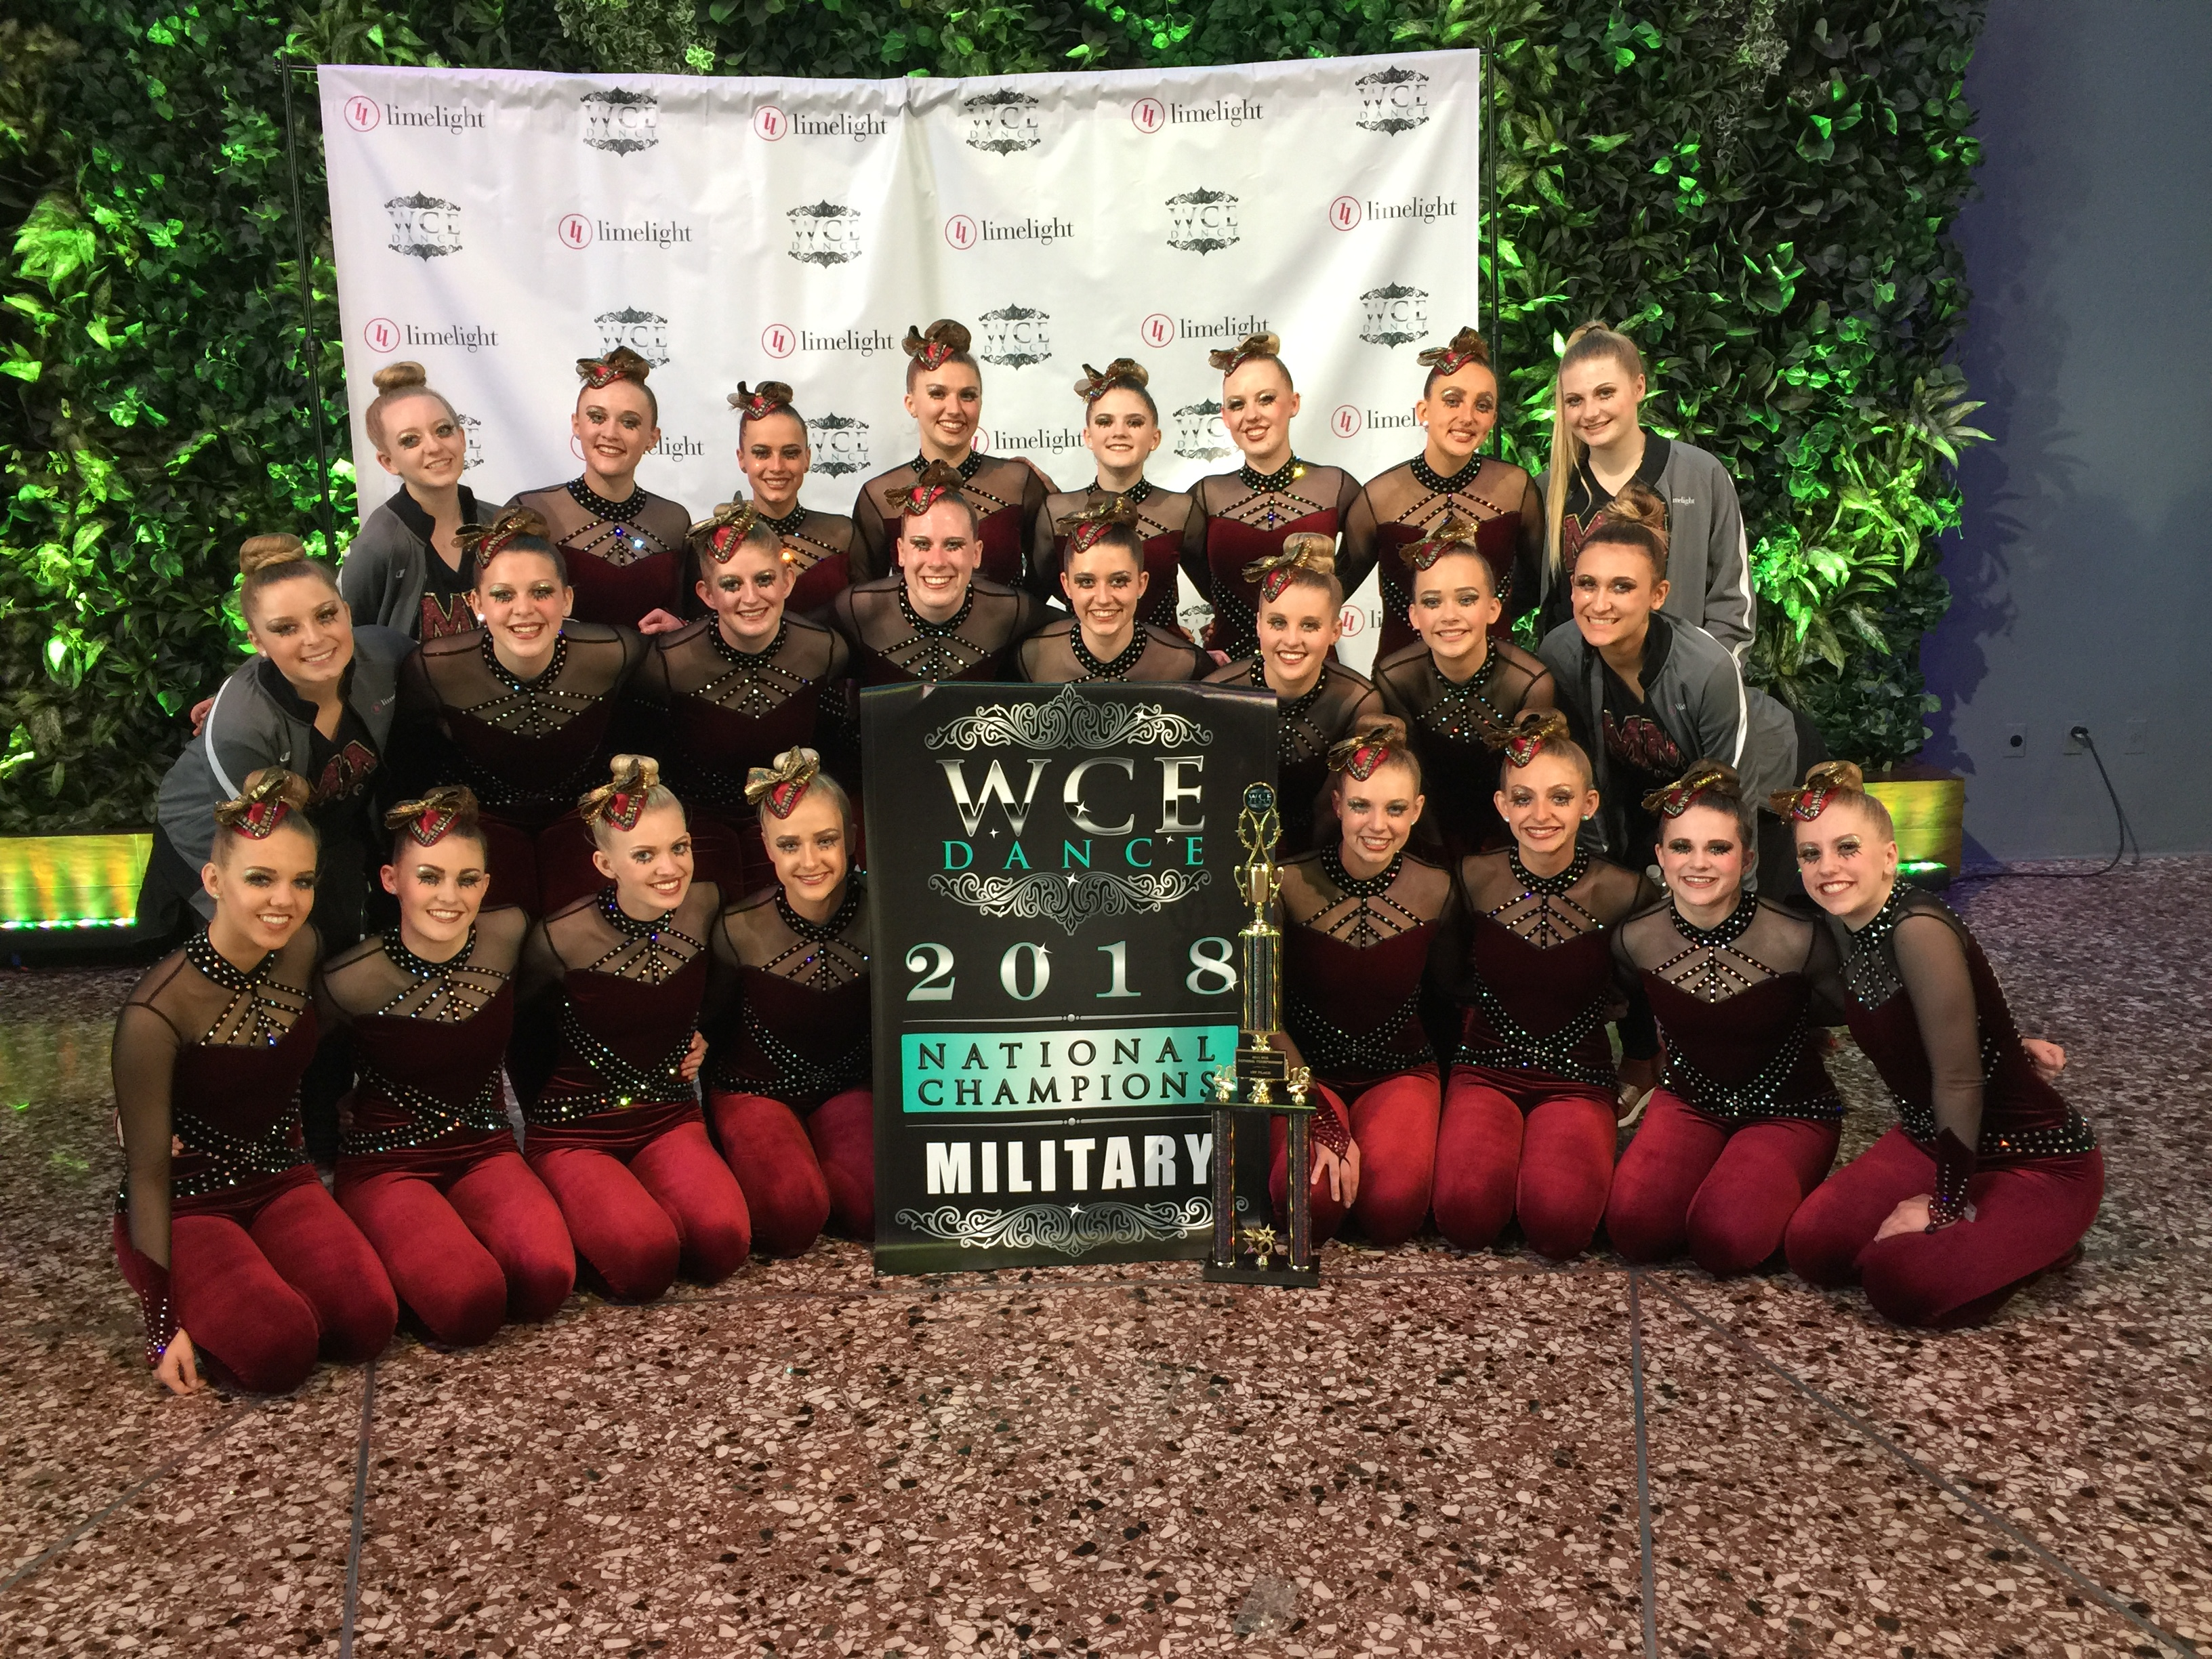 MMHS ELLEVÉS ARE NATIONAL MILITARY CHAMPIONS